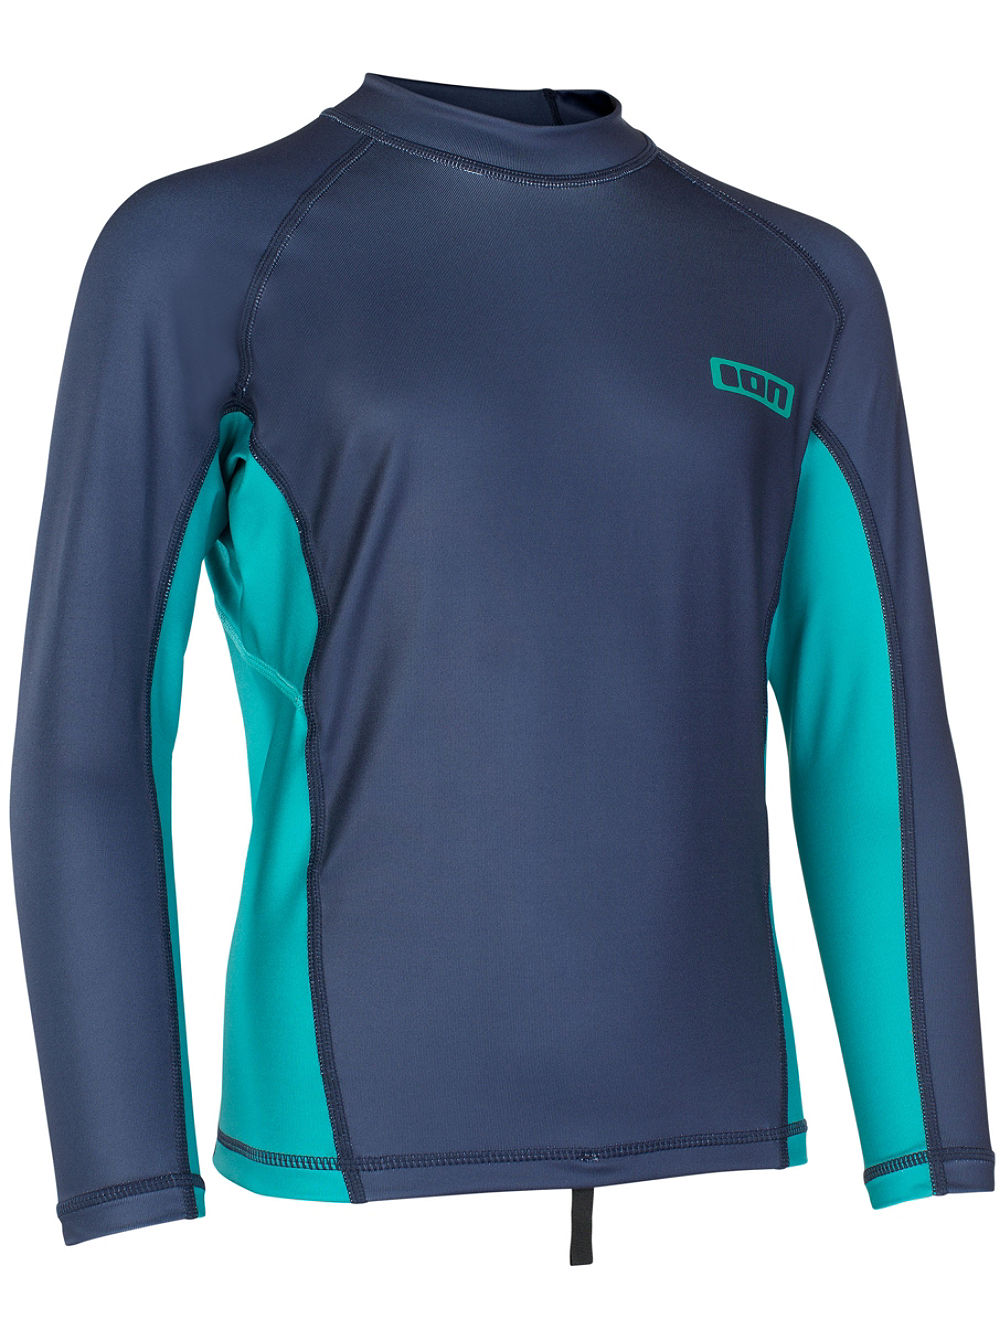 Capture Longsleeve Rash Guard